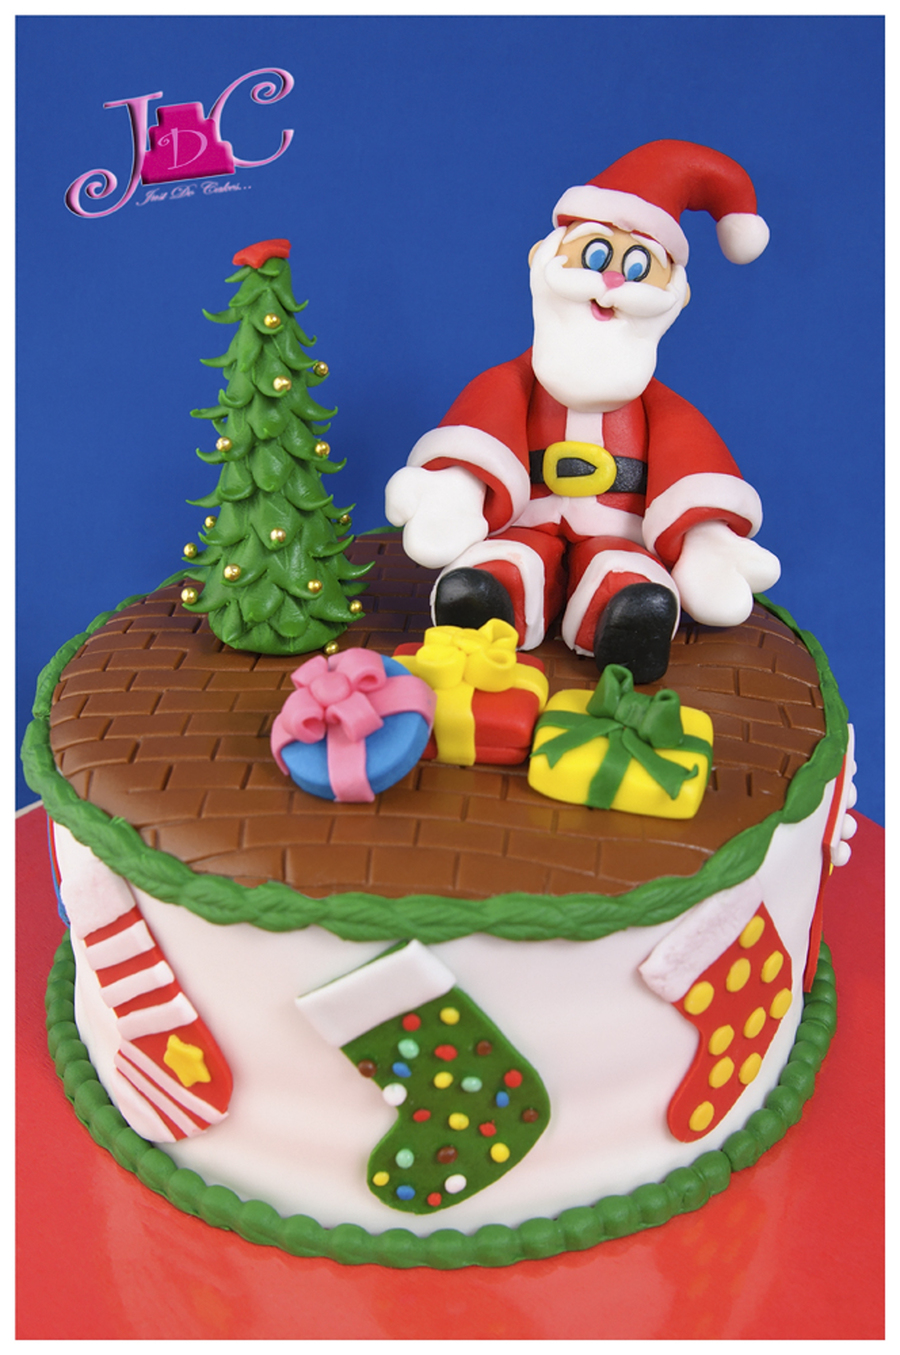 This Is My First Santa Claus I Hope You Like It I Made The Christmas Tree First Then The Cake Then The Santa When I Finished The Whole on Cake Central